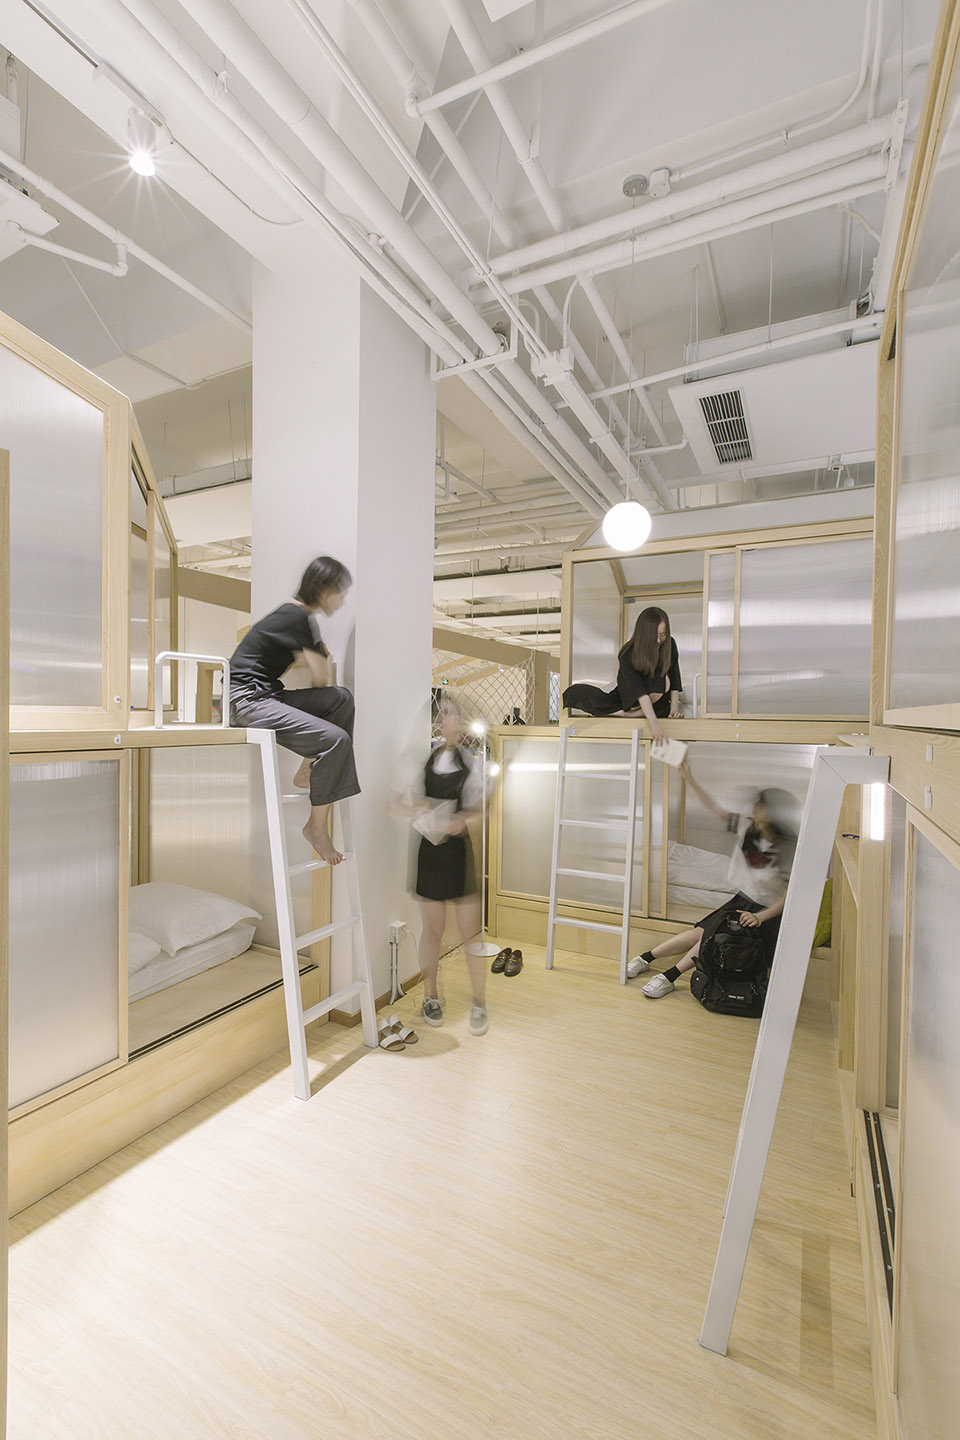 10-Together-Hostel-indoor-camping-space-for-youth-By-Jacobsen-Arquitetura